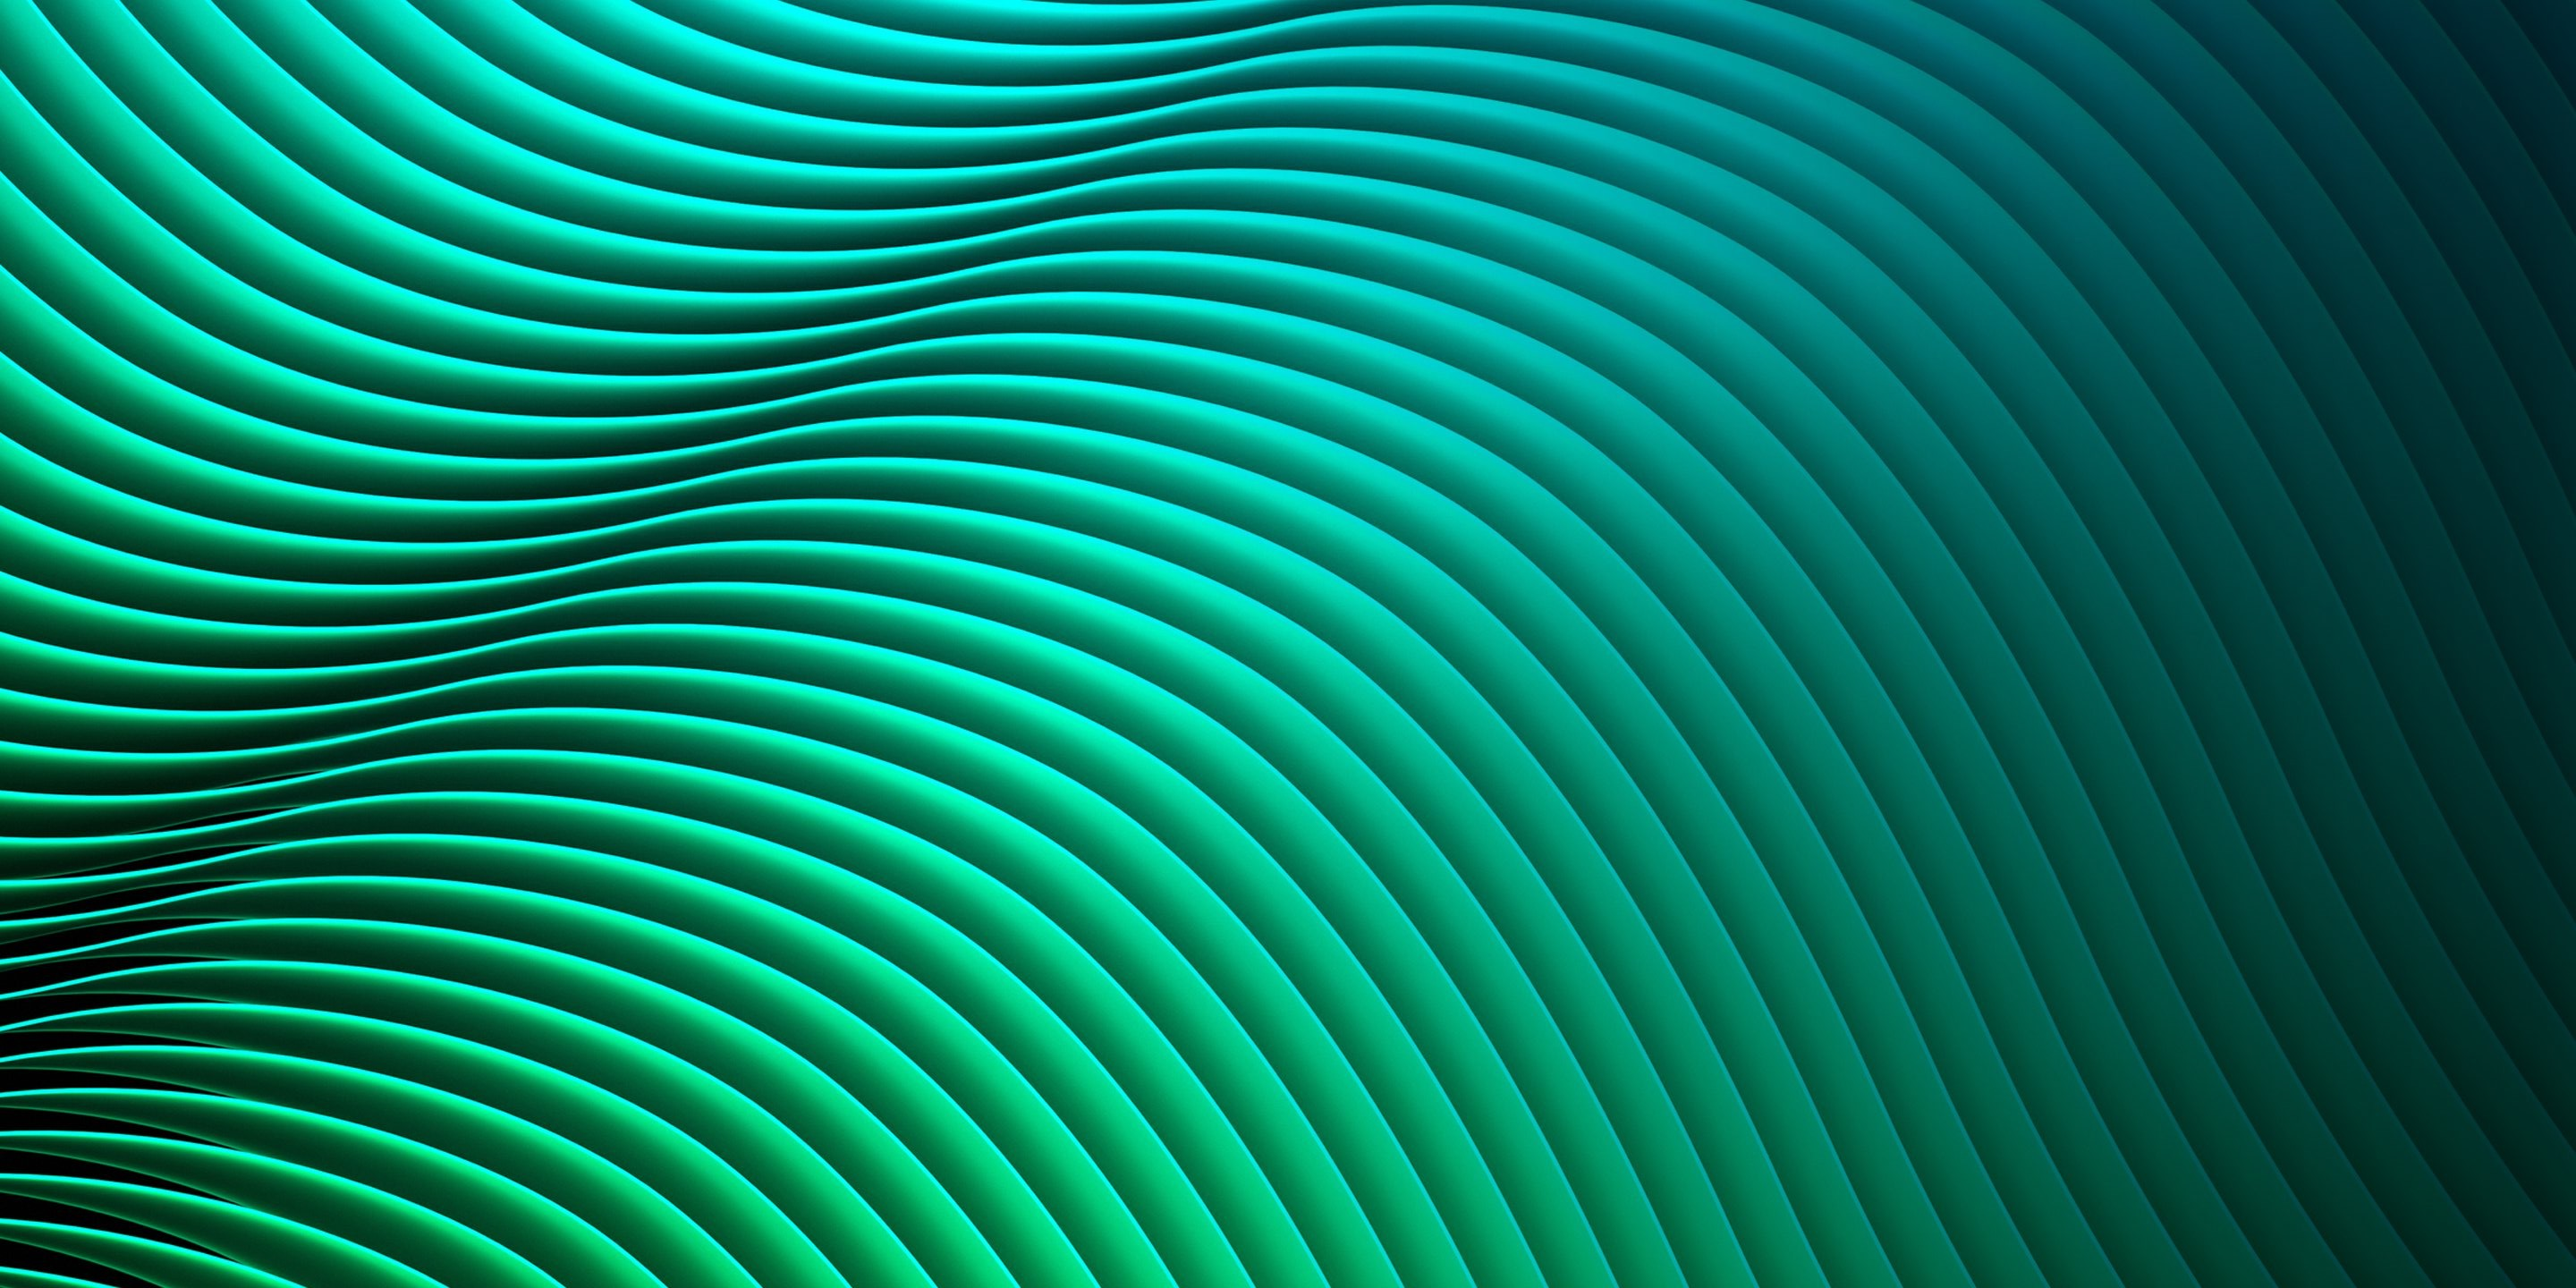 Wallpaper waves lines green hd abstract 15588 for Wallpaper home line